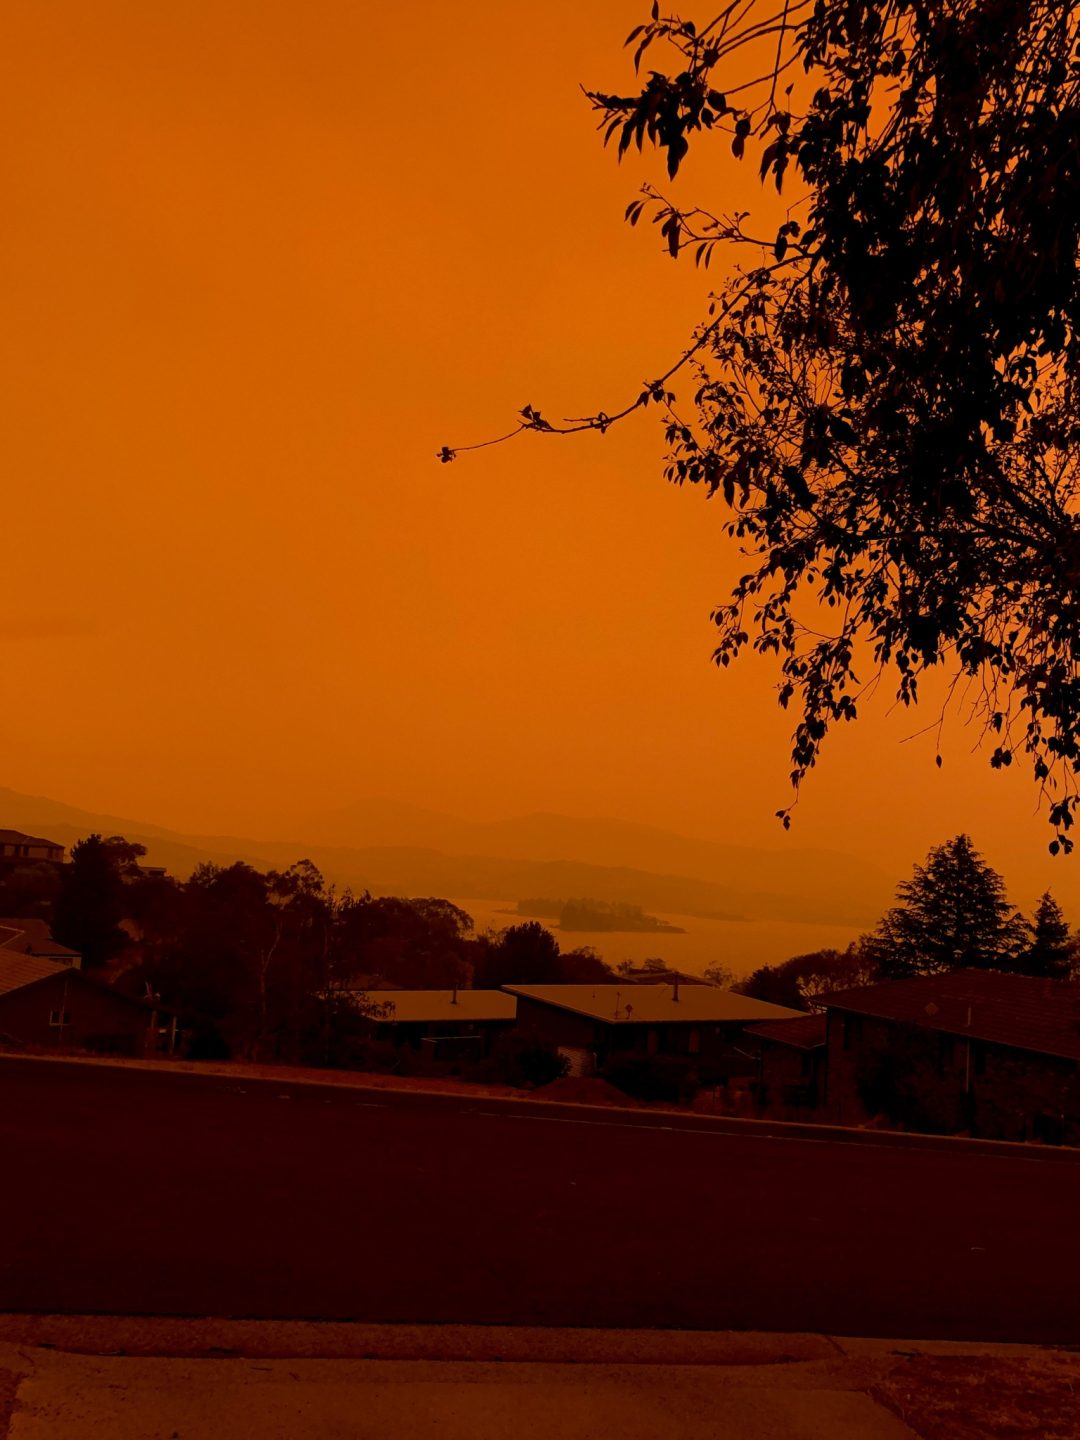 A view over suburban properties in the town of Jindabyene. The sky is orange because of nearby bush fires.